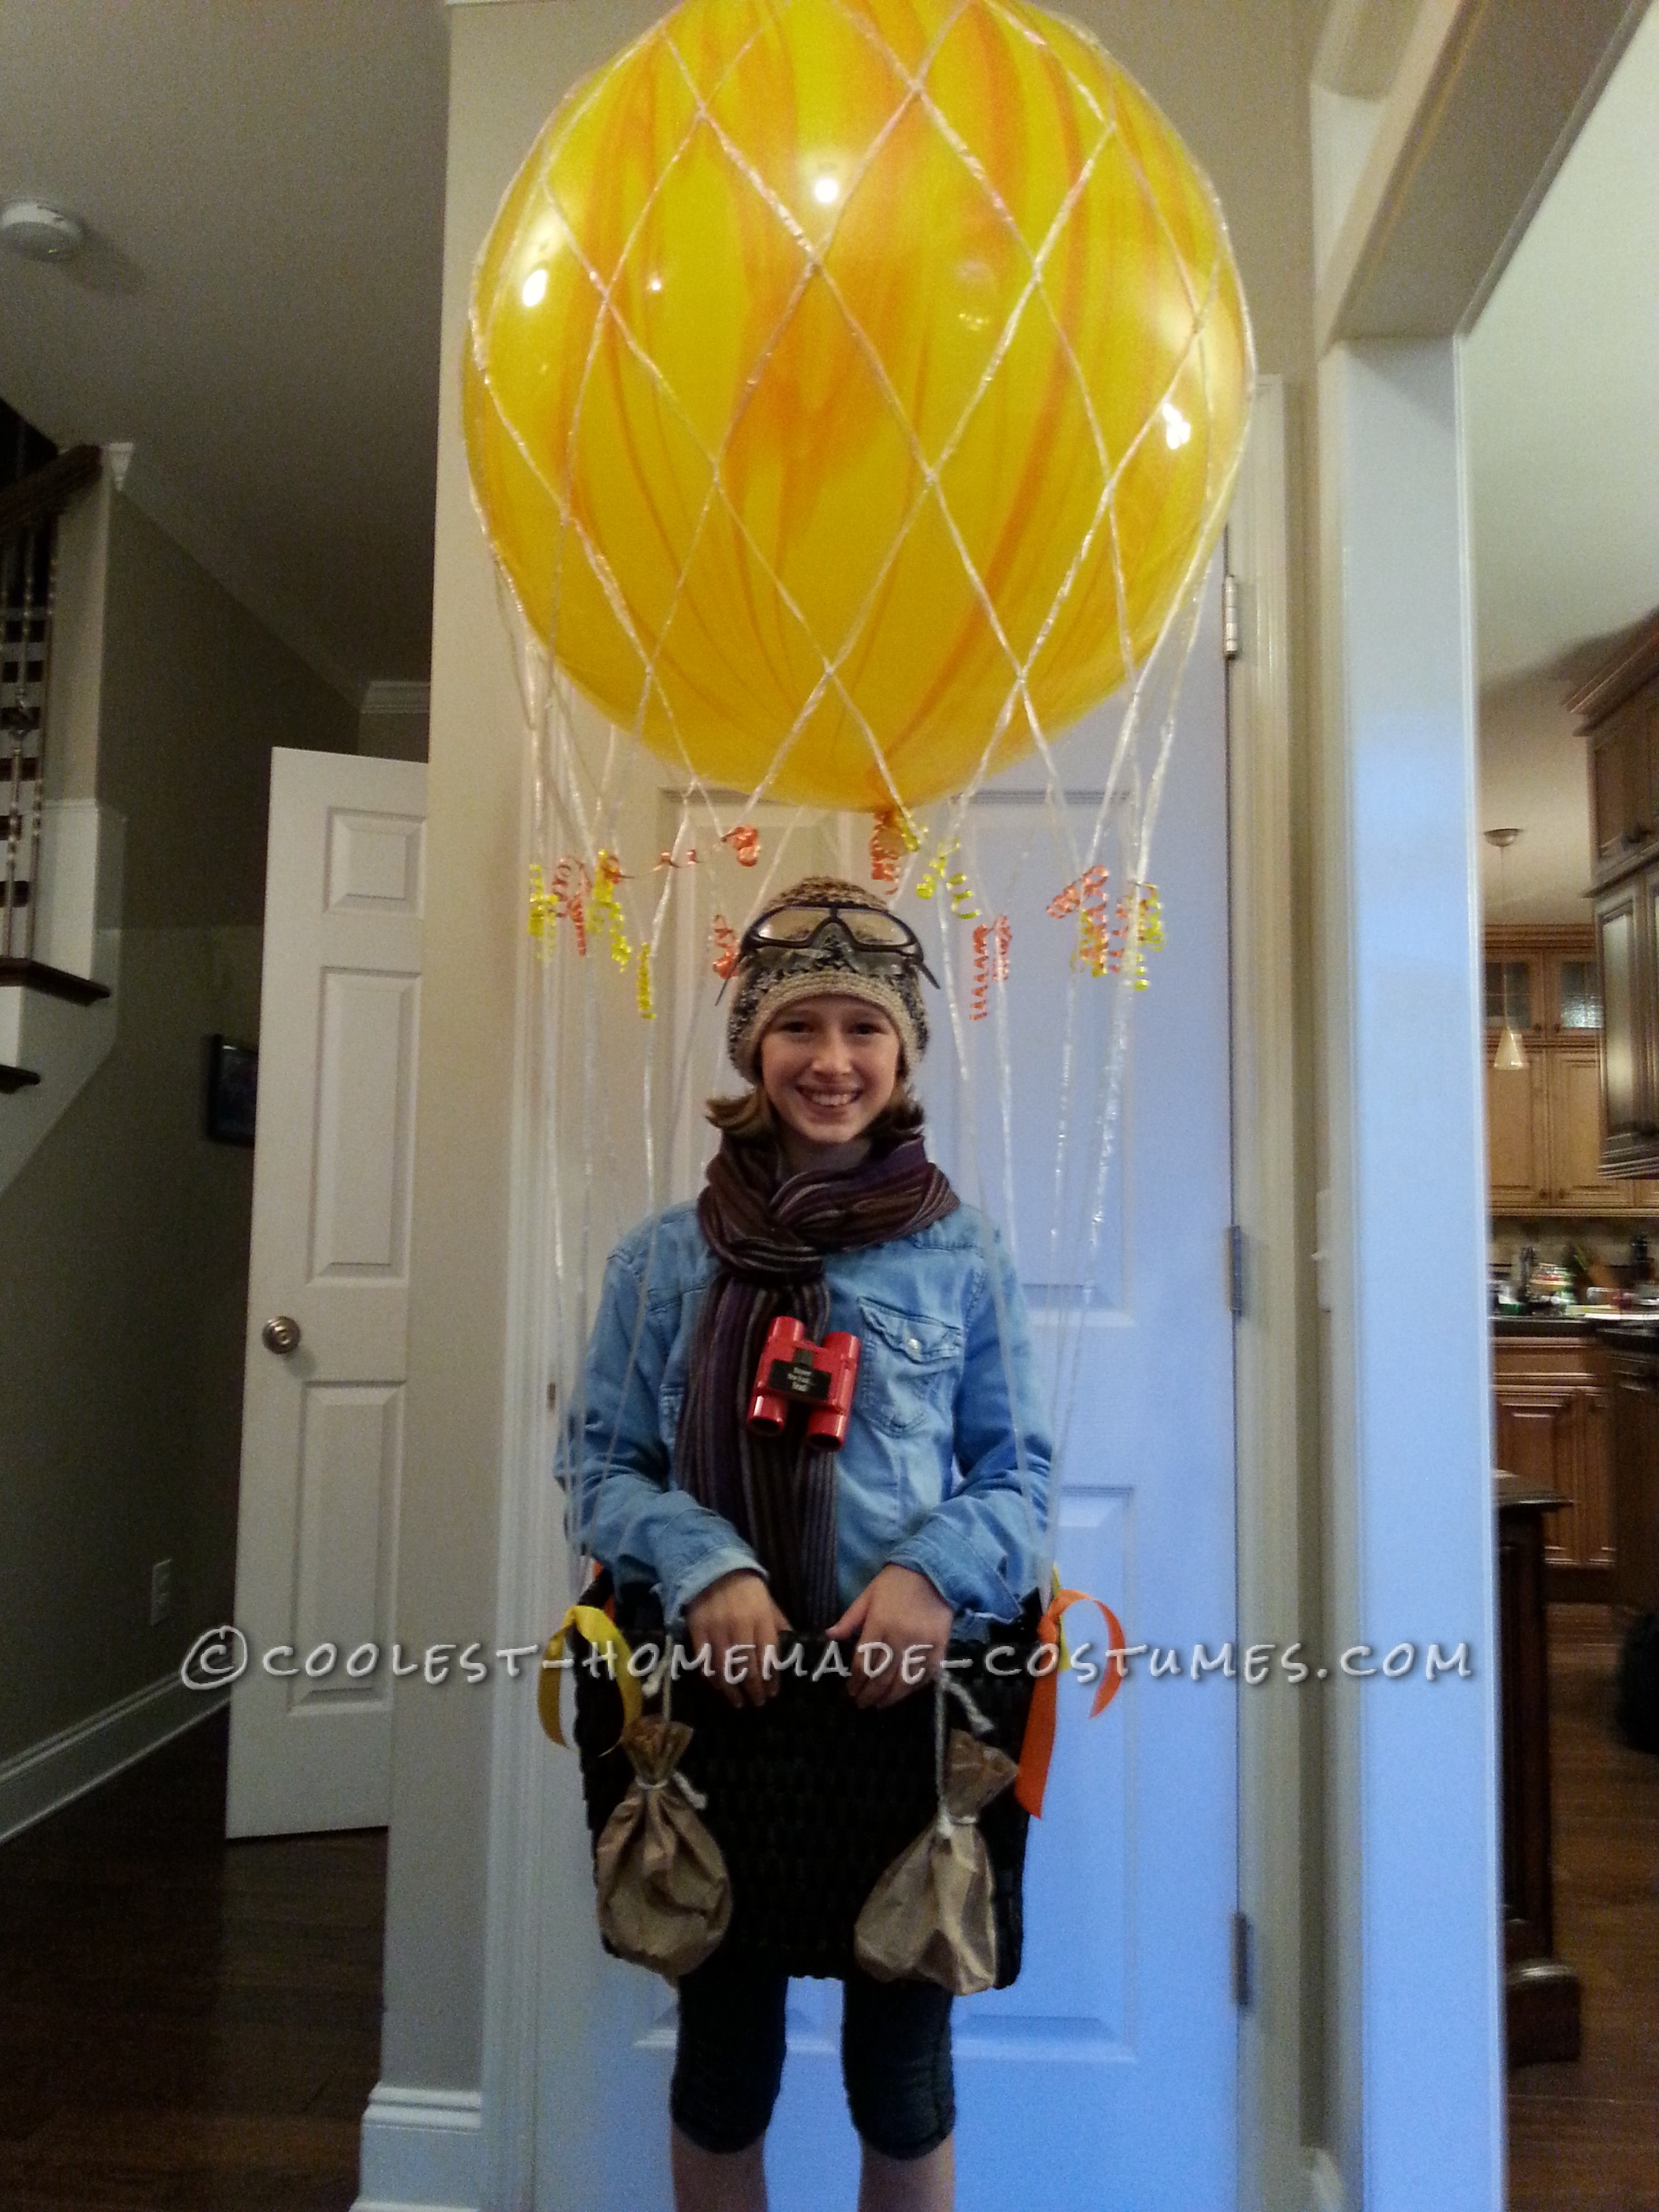 Cool Homemade Hot Air Balloon Costume: Ready for Liftoff